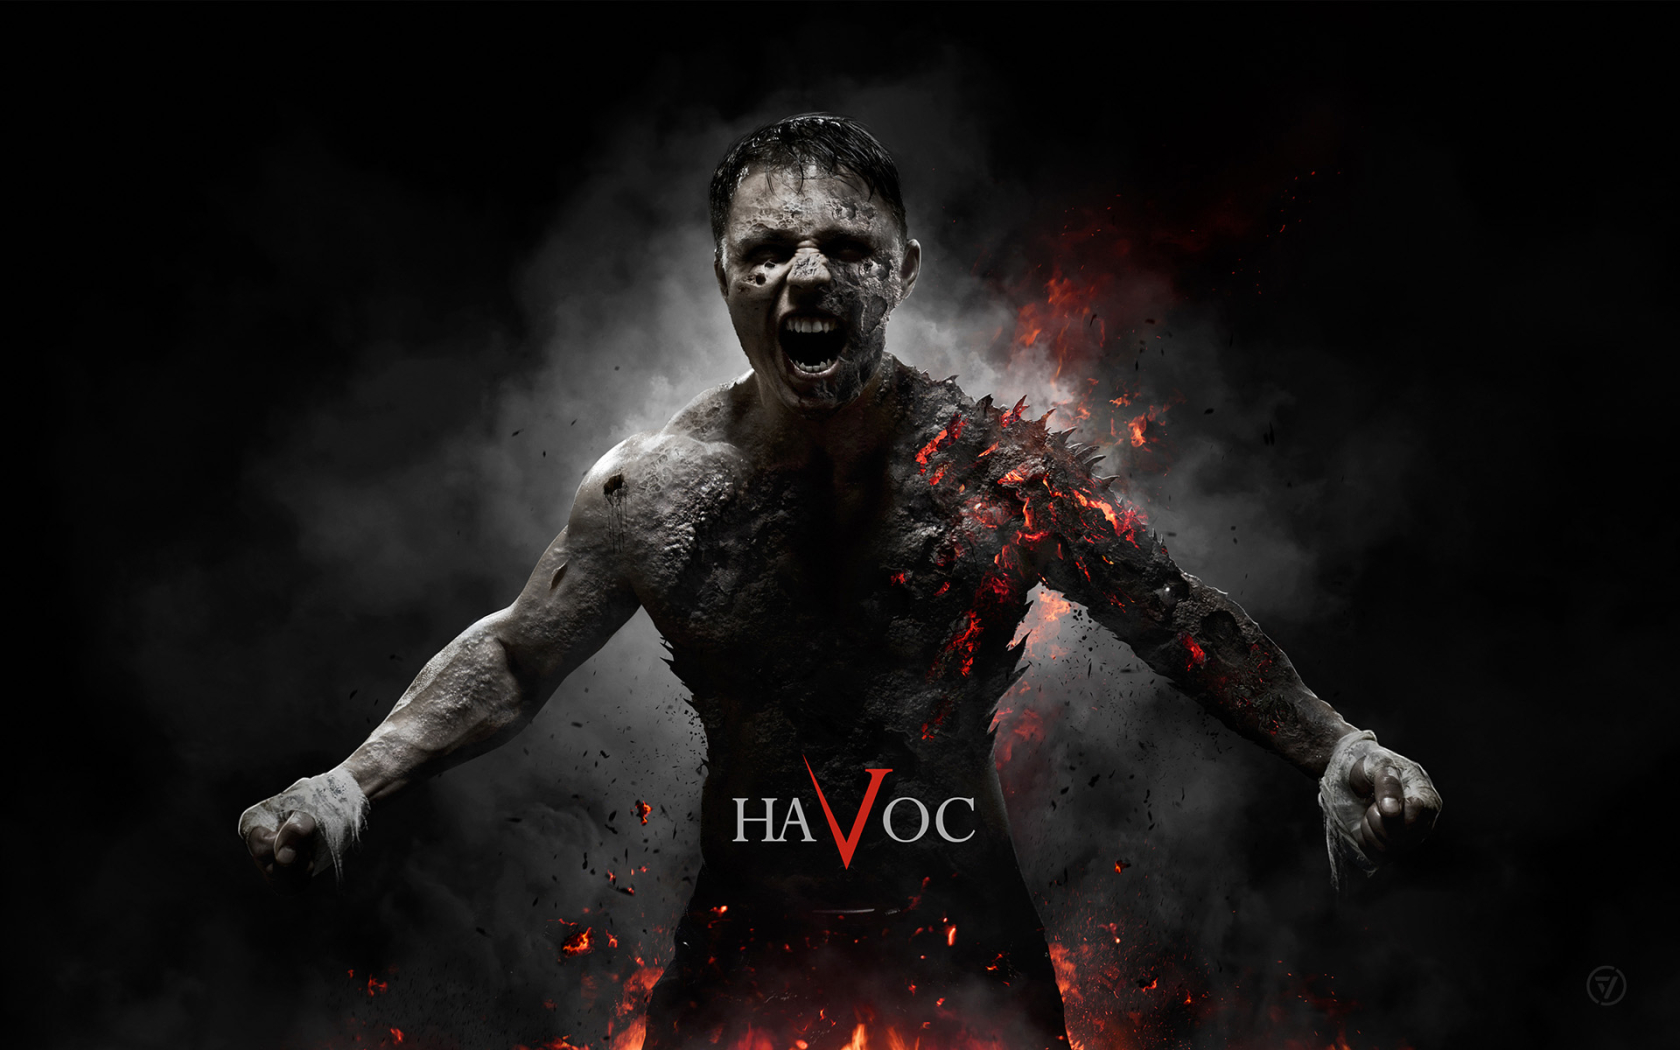 Havoc for 1680 x 1050 widescreen resolution